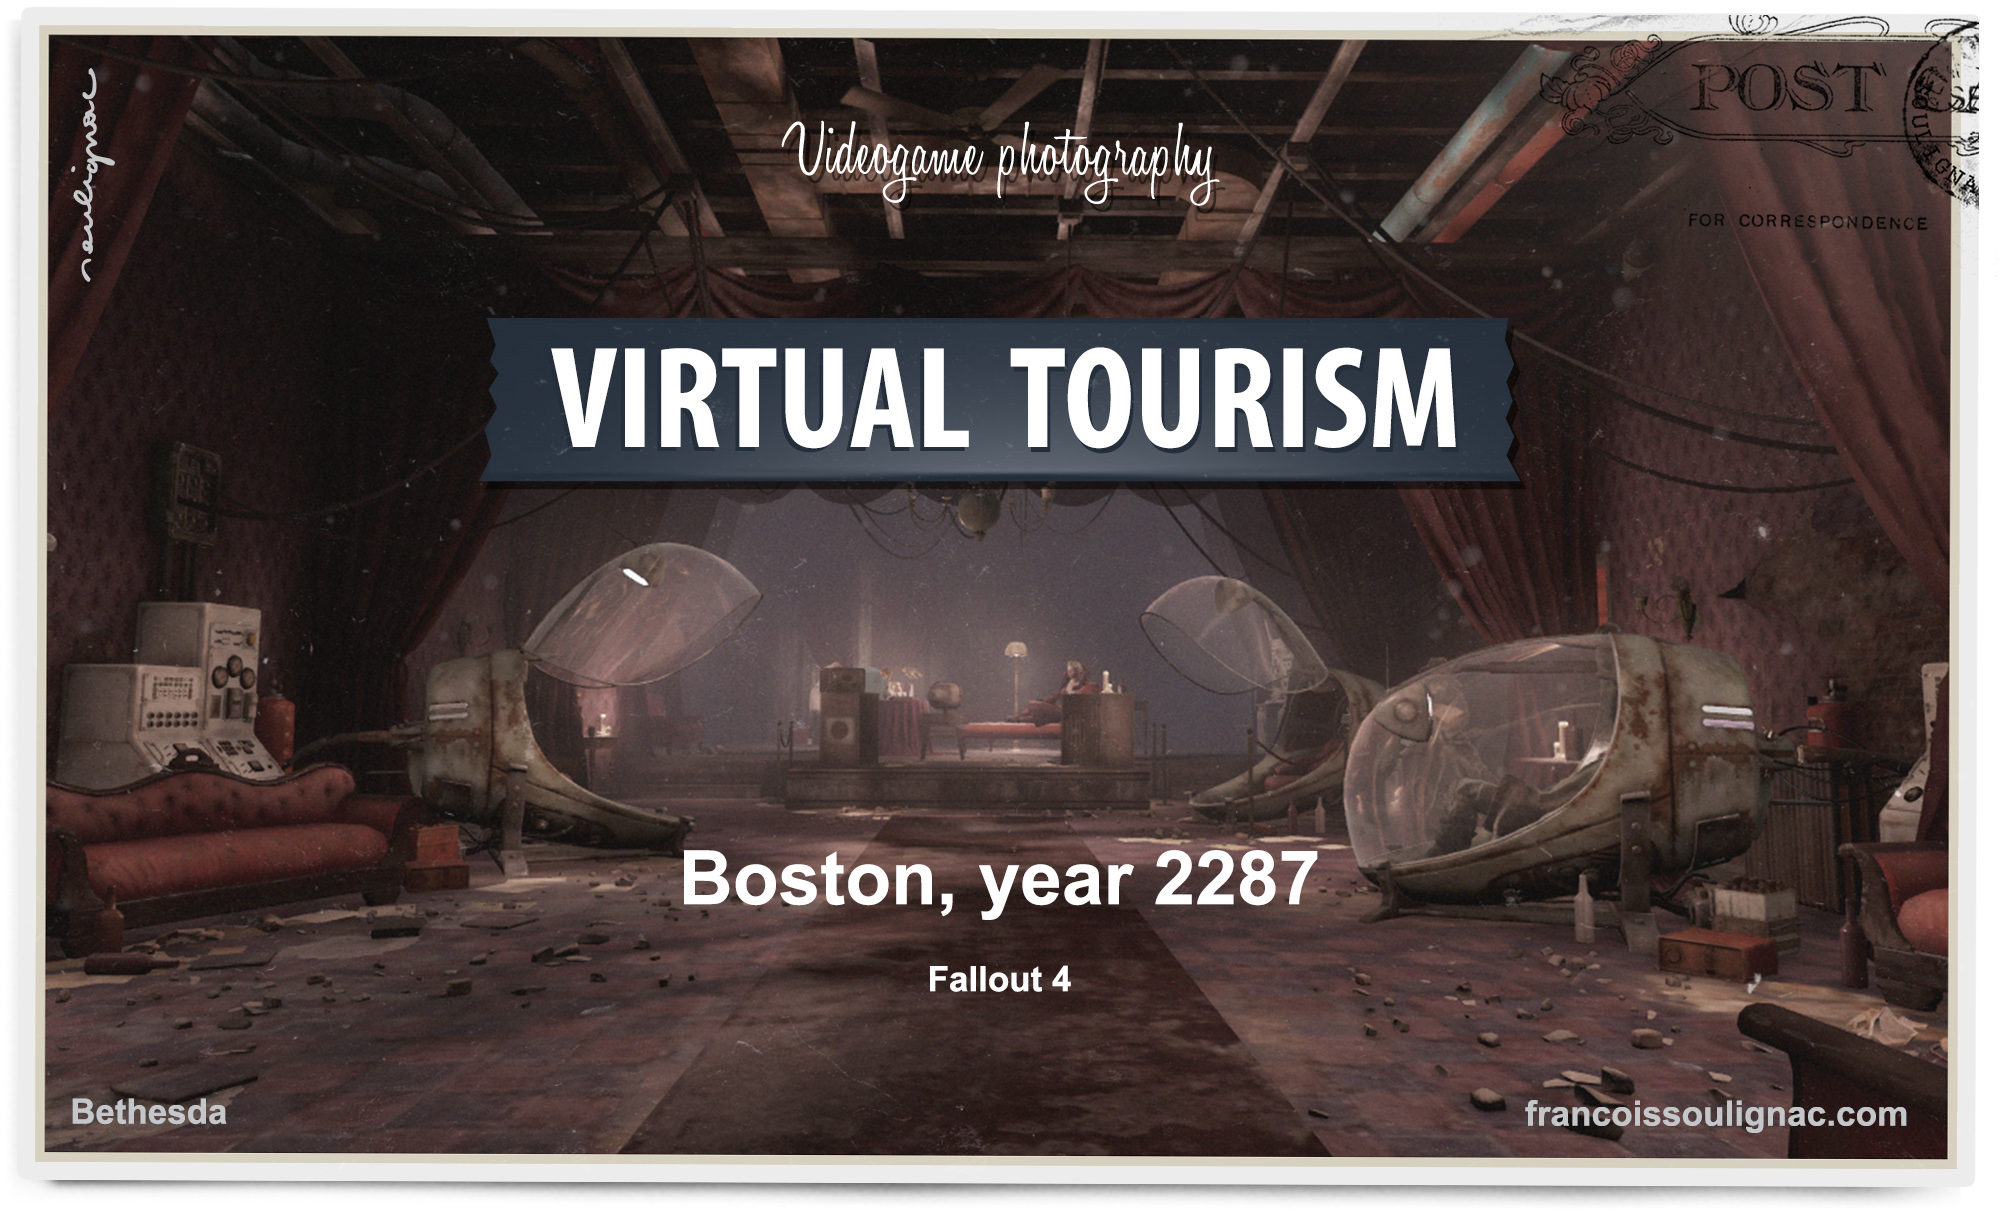 Virtual Tourism in Boston virtual reality room - Urban exploration in Fallout 4, Vintage Postcard from virtual worlds, In-game photography - © Bethesda Softworks - François Soulignac